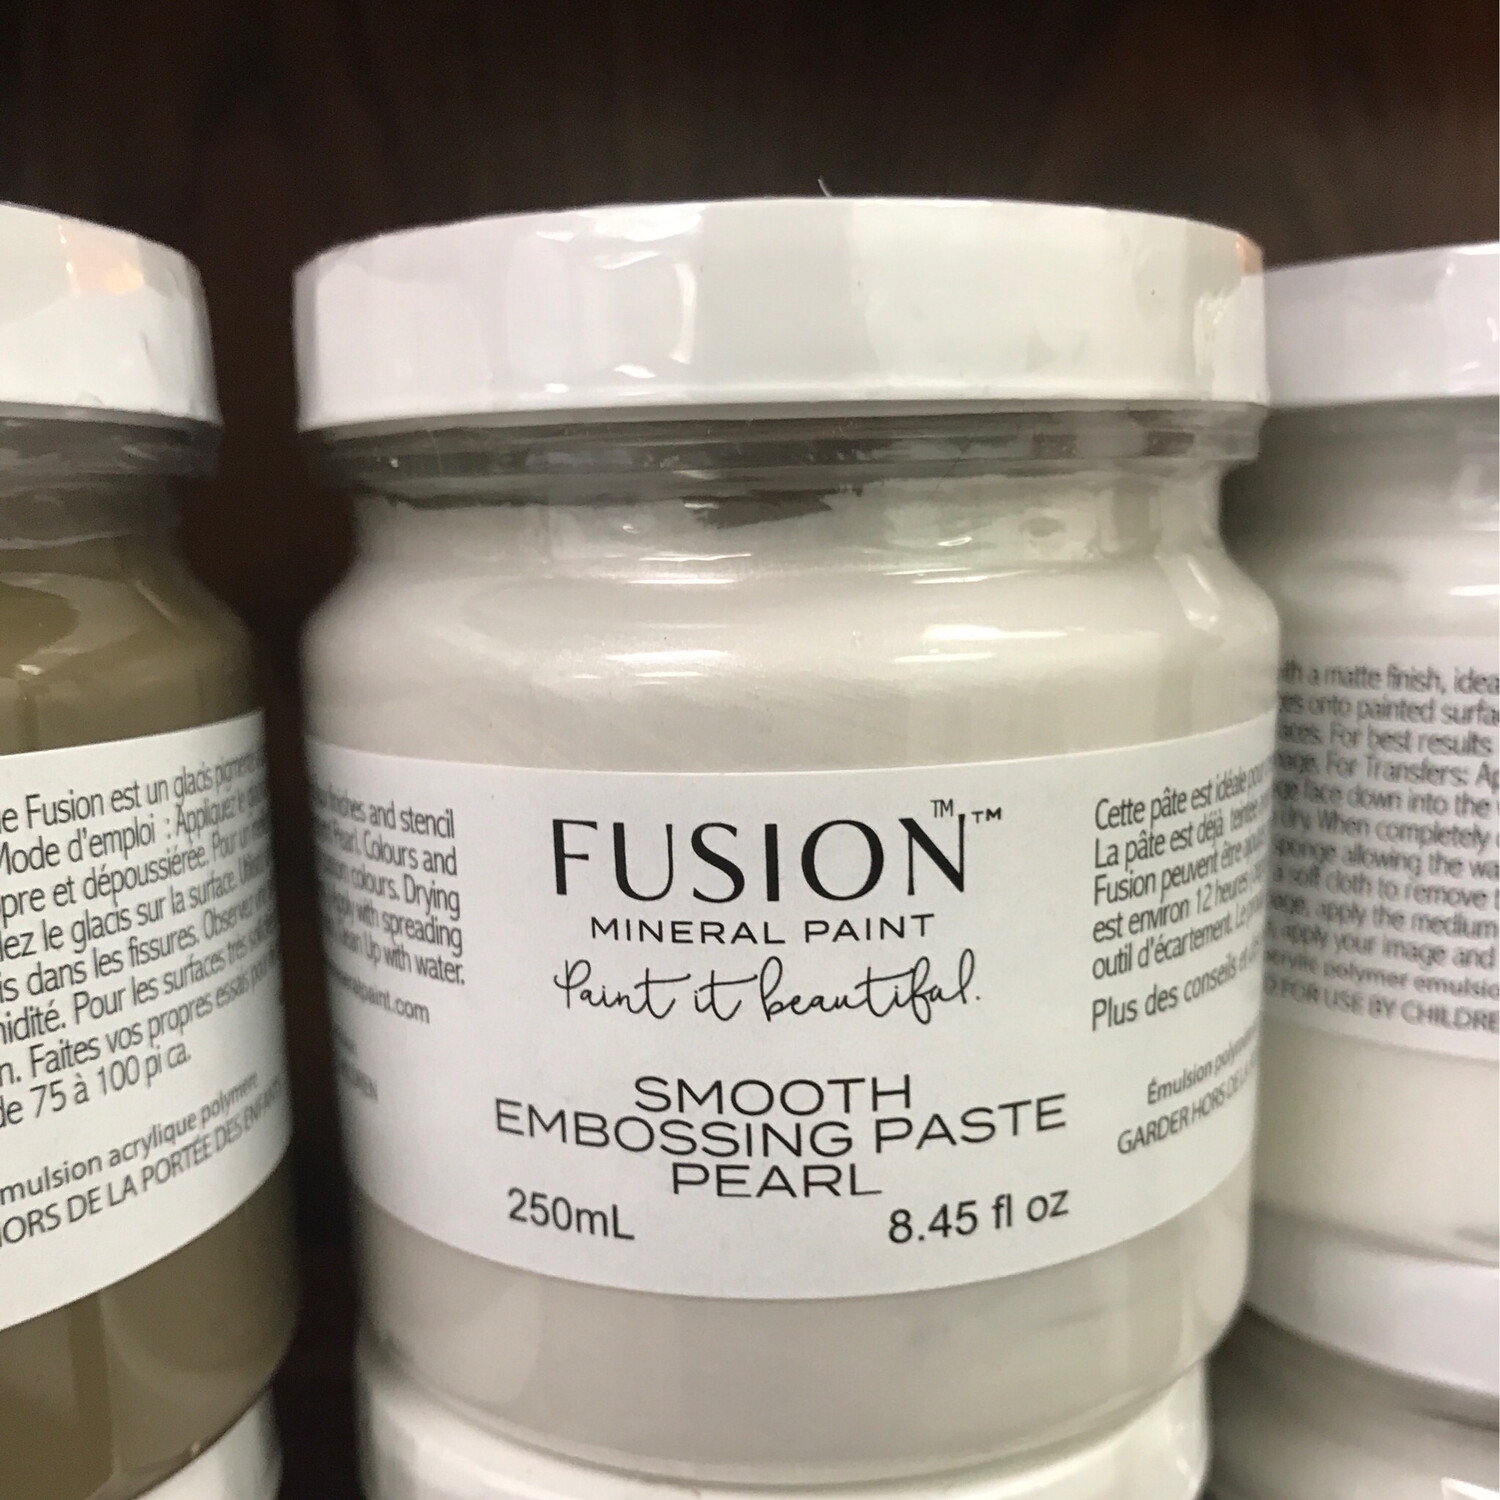 Fusion Smooth Embossing Paste Pearl 250ml